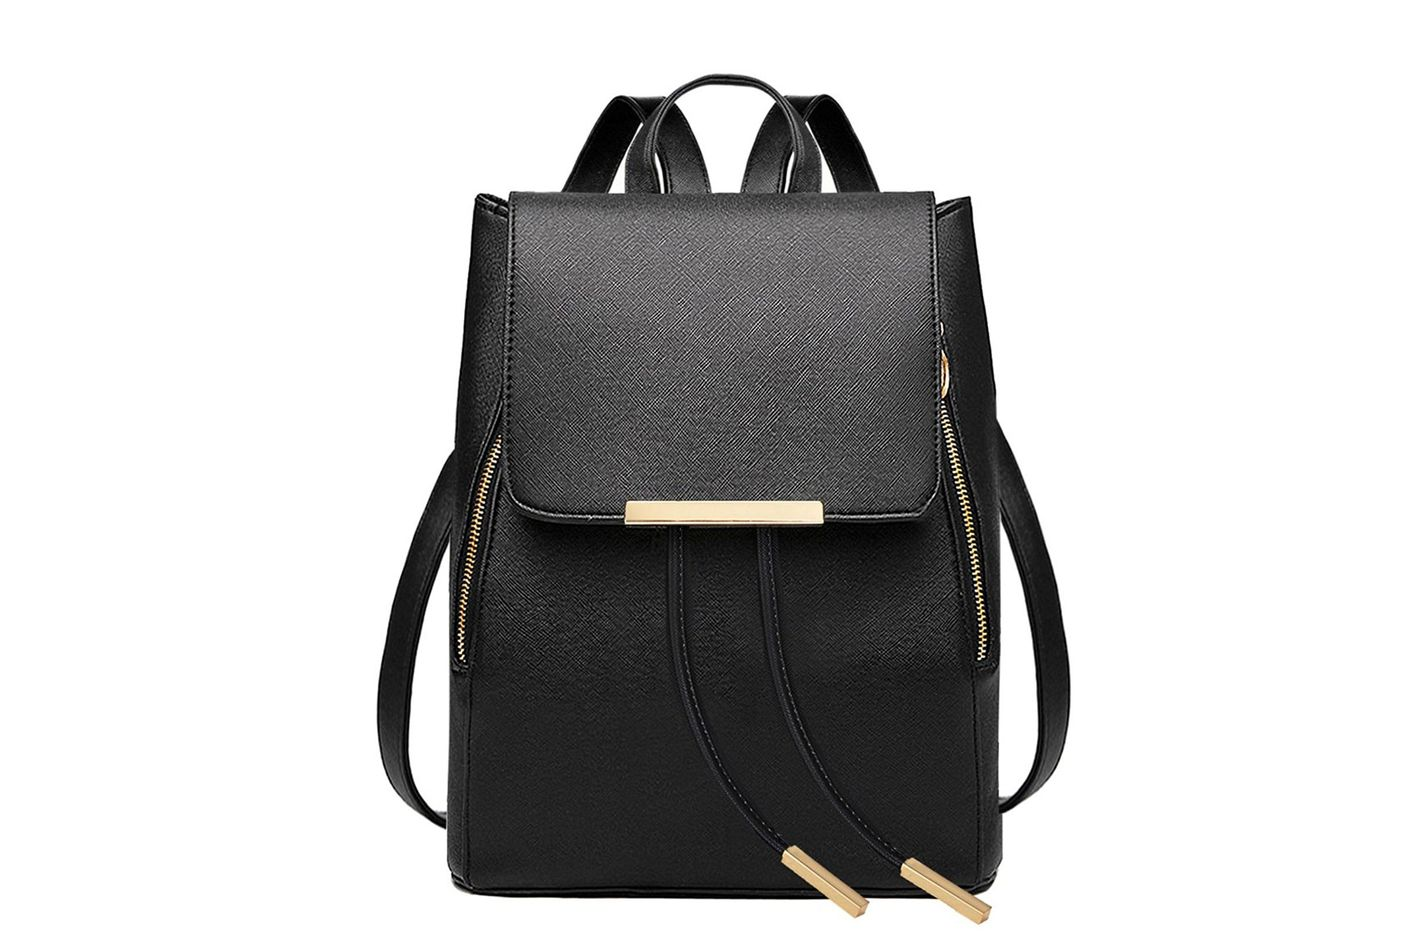 Coofit Black Leather Backpack for Women